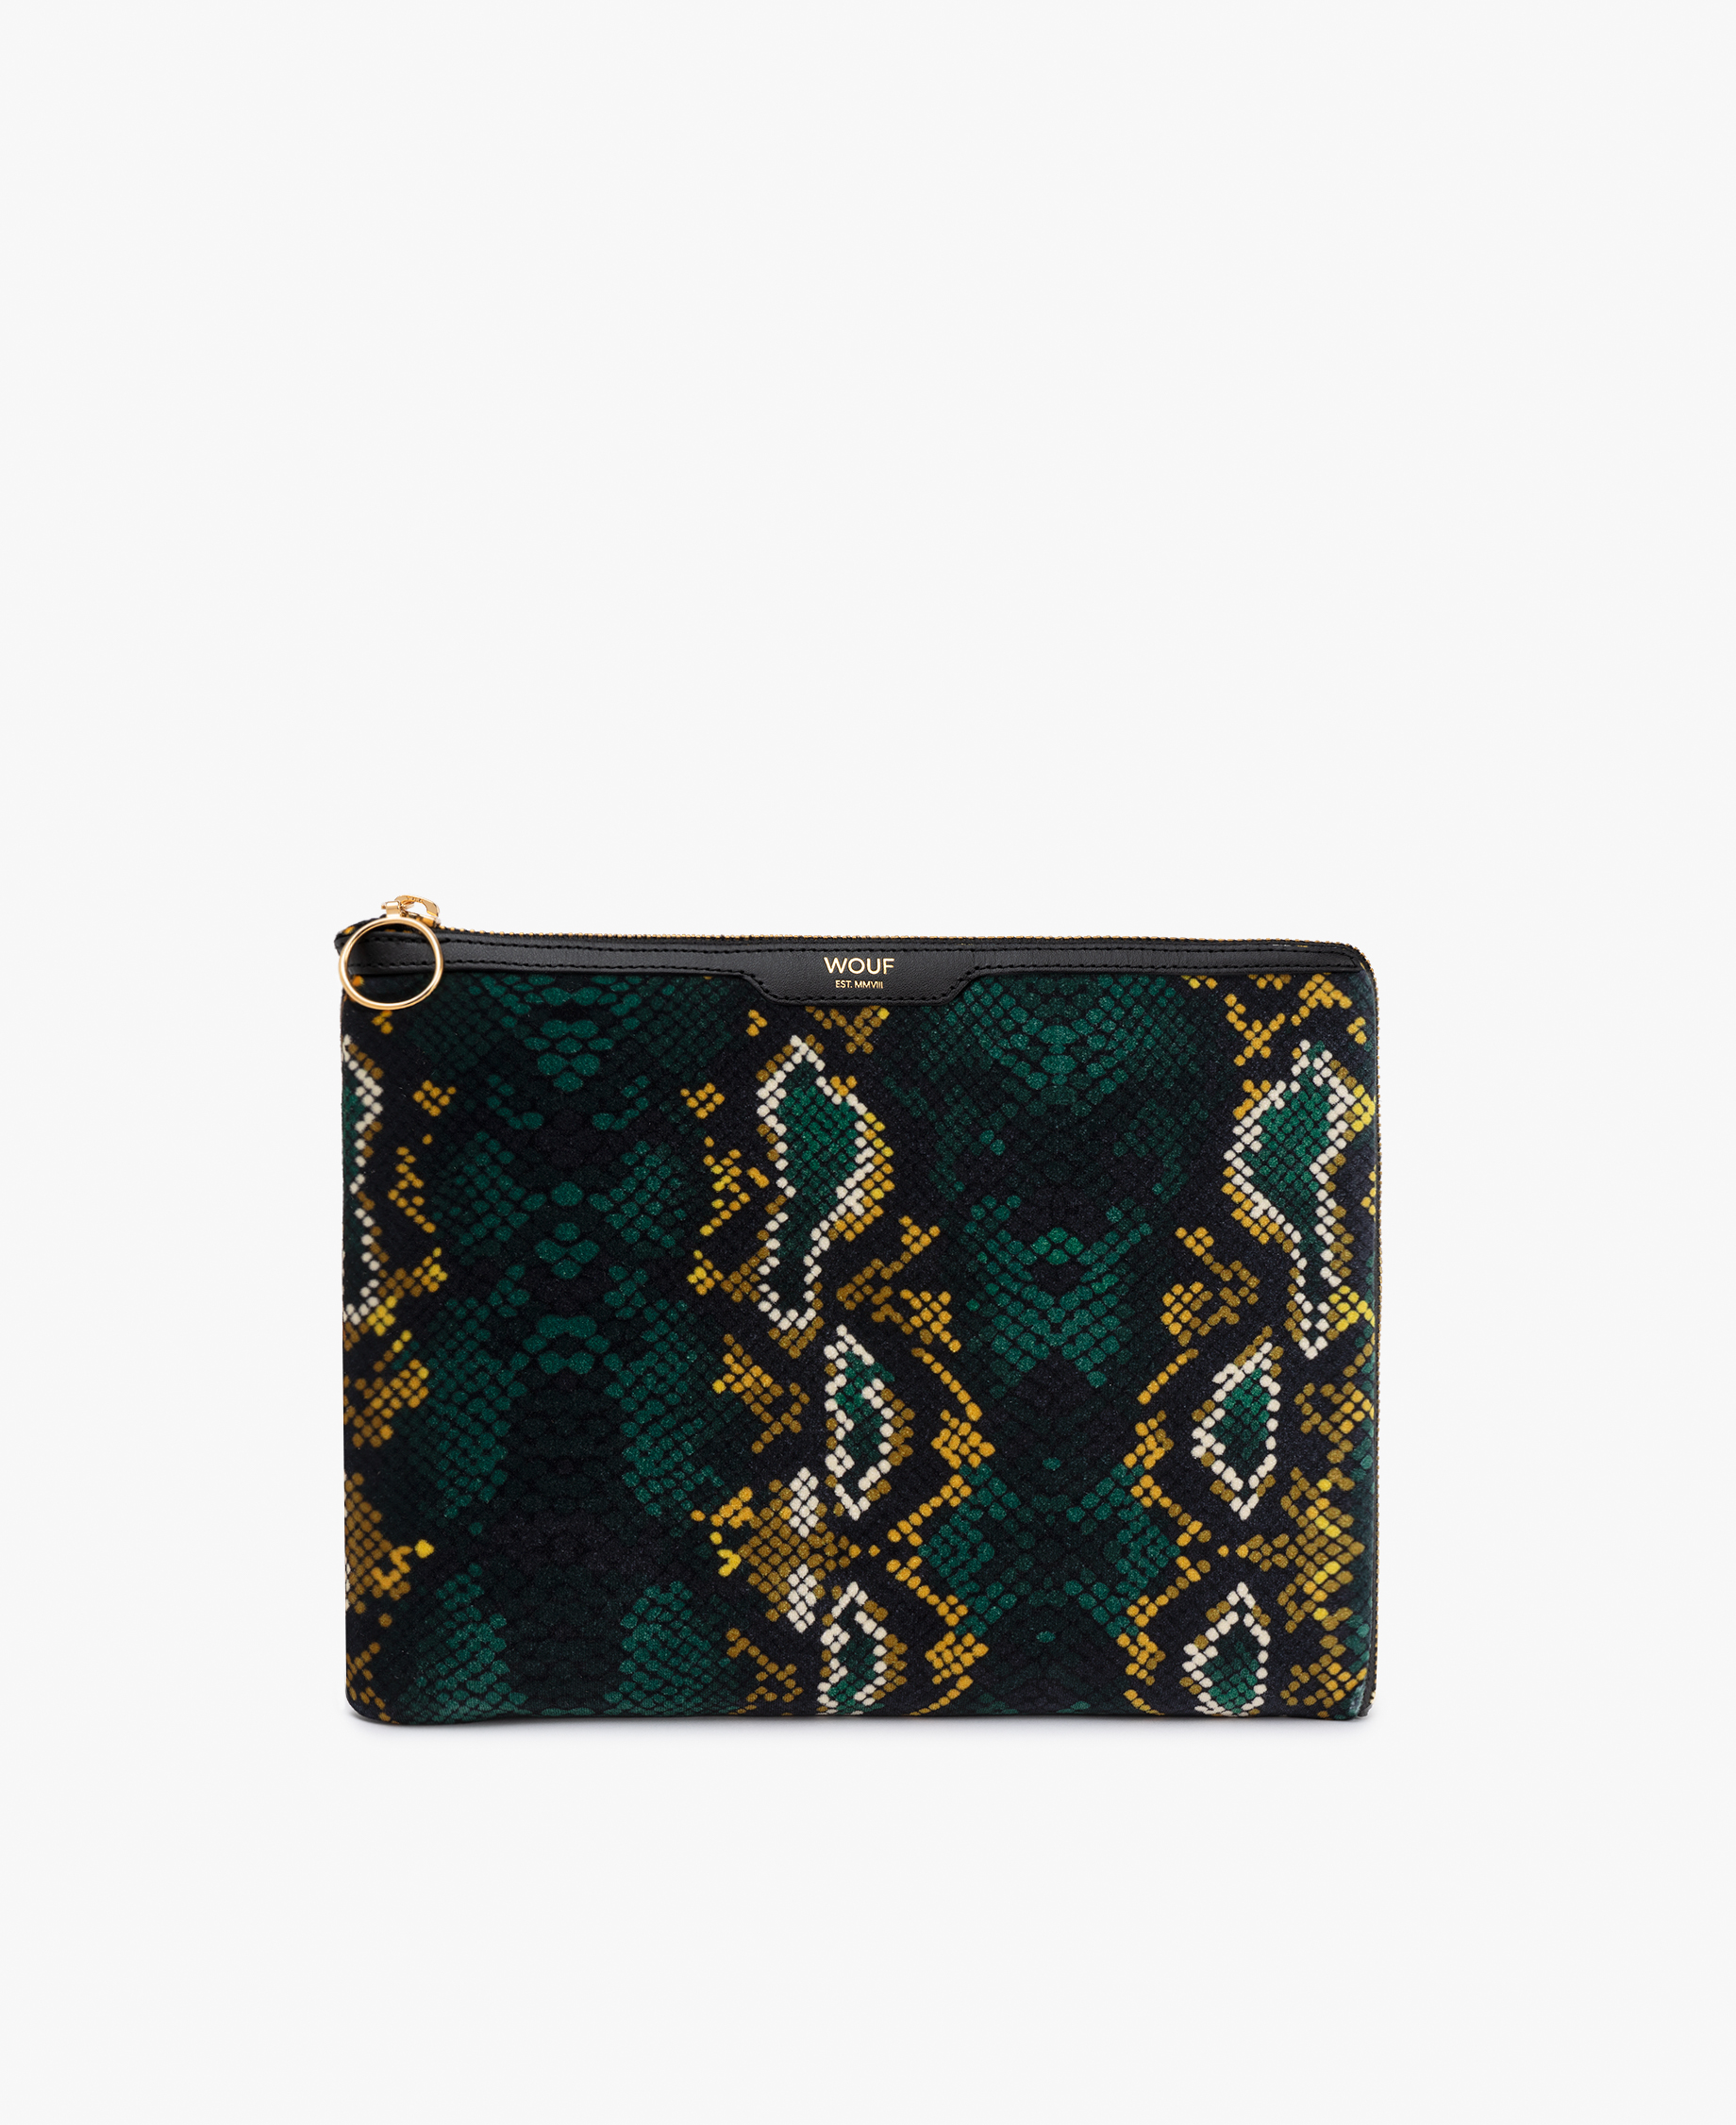 snakeskin velvet woman iPad case